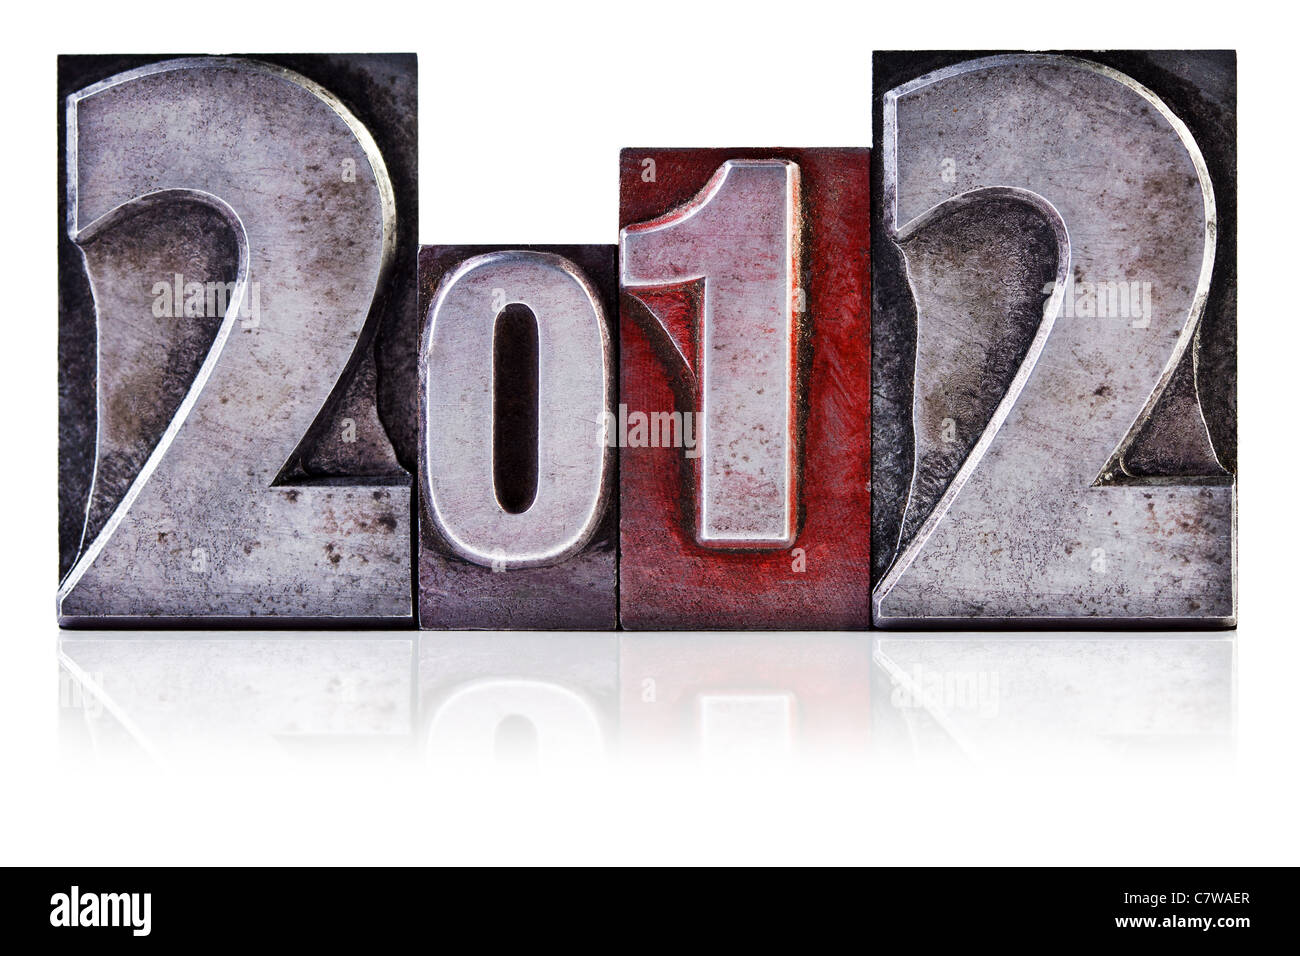 Photo of the number 2012 in old metal letterpress, isolated on a white background. - Stock Image